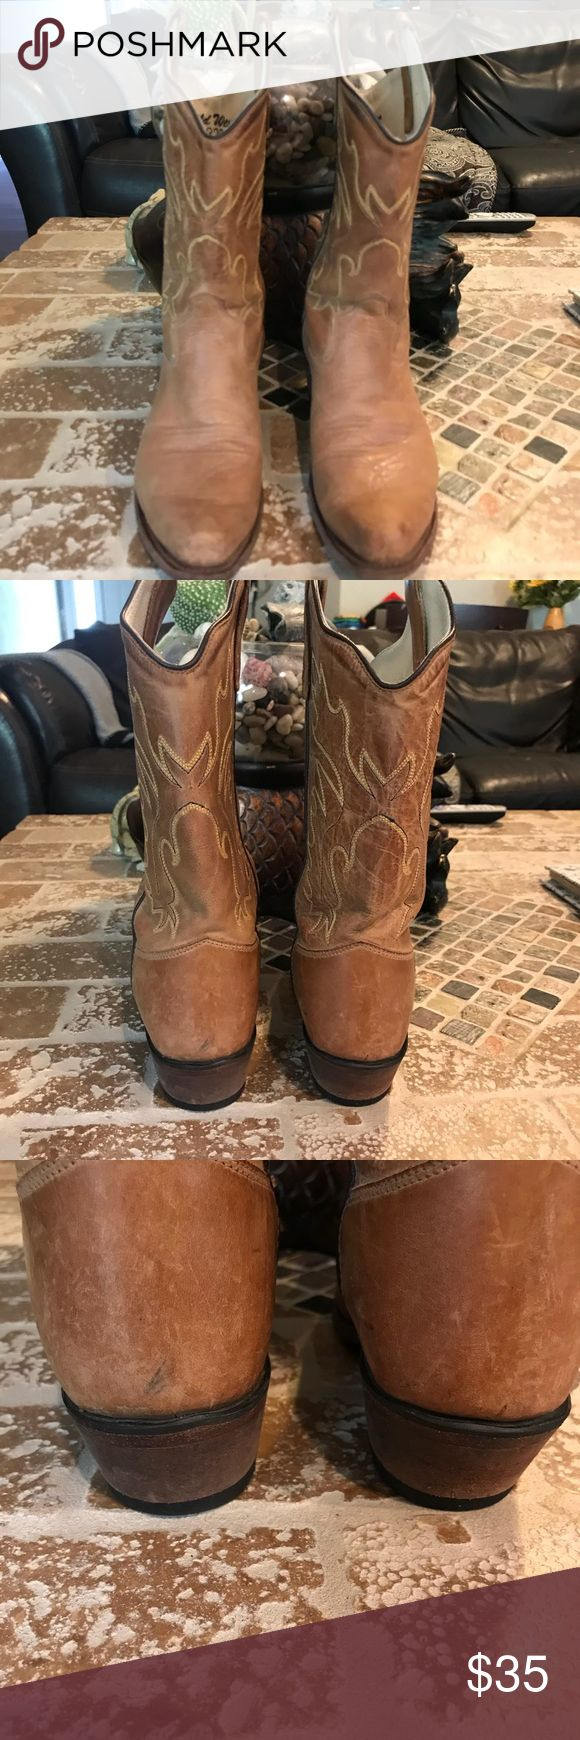 Old West boot! Size 045. Size 045 fits like women's size 6. Old West Shoes Ankle Boots & Booties